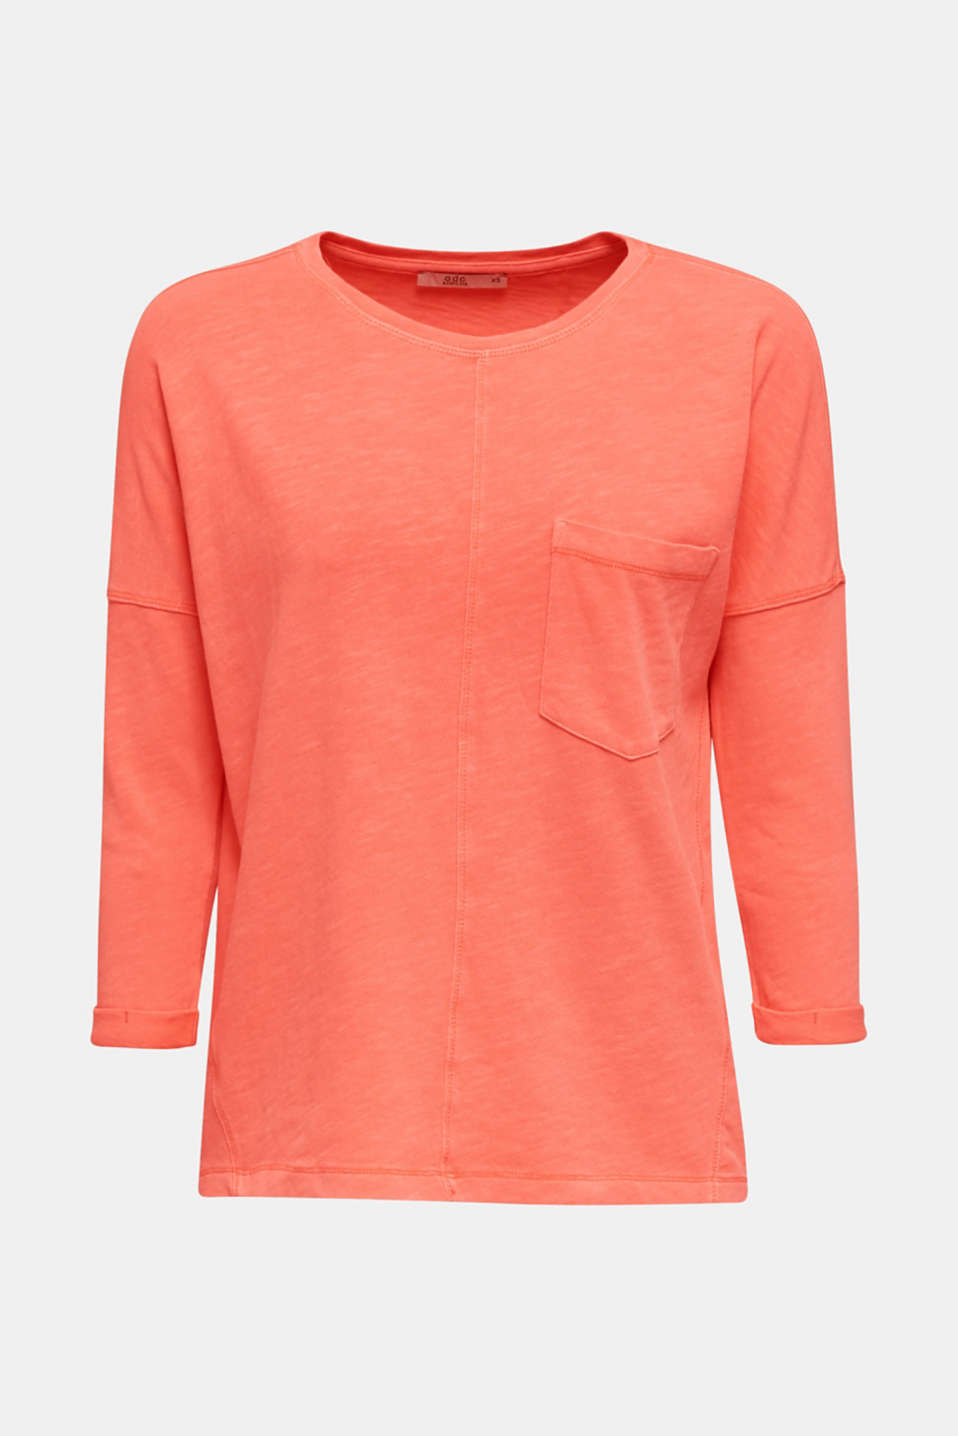 NEON slub T-shirt with a pocket, 100% cotton, CORAL, detail image number 5